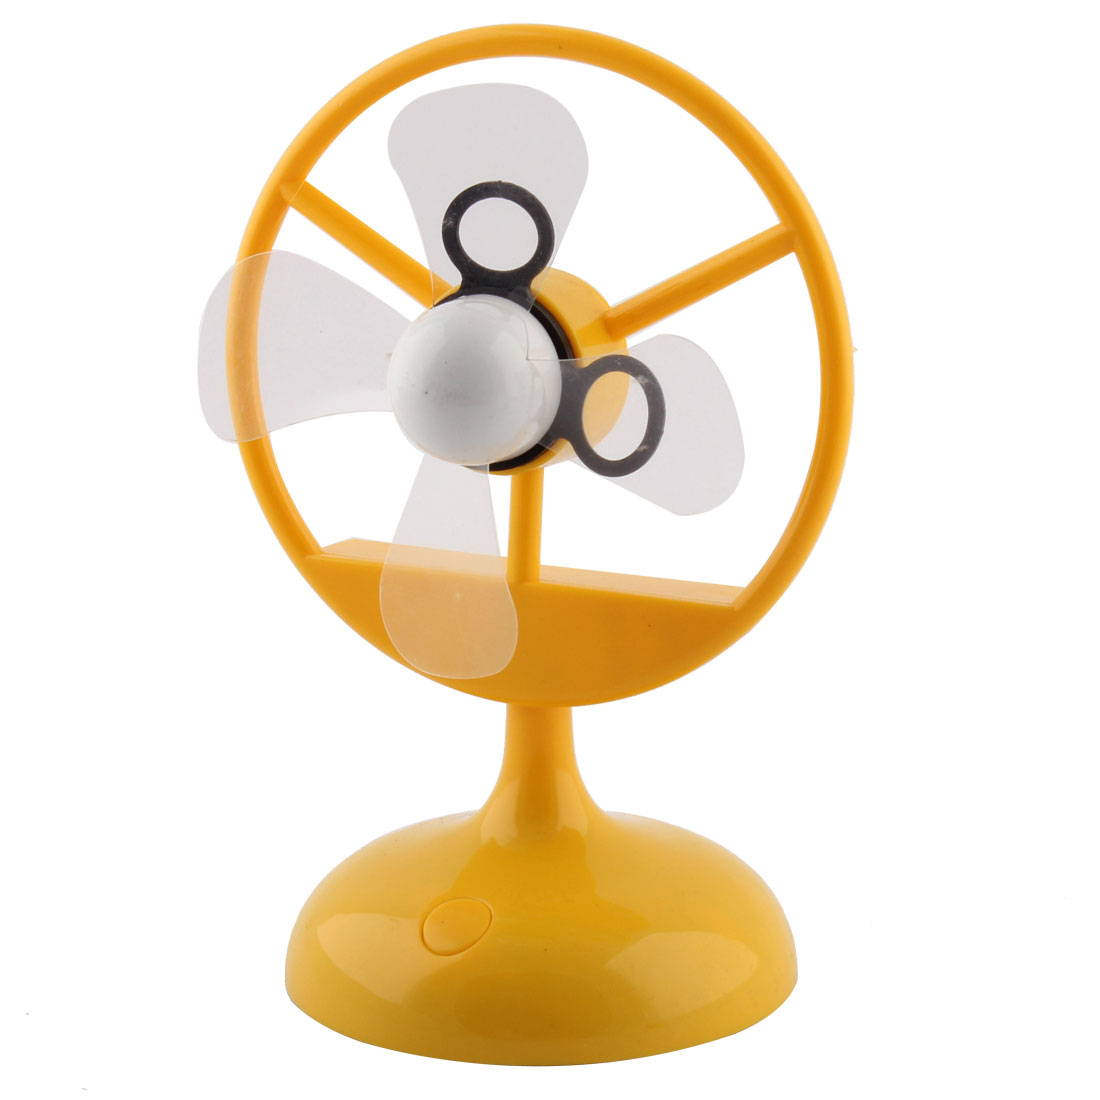 Plastic 4 Fans Round Base USB Mini Cooler Cooling Air Fan for Office Table